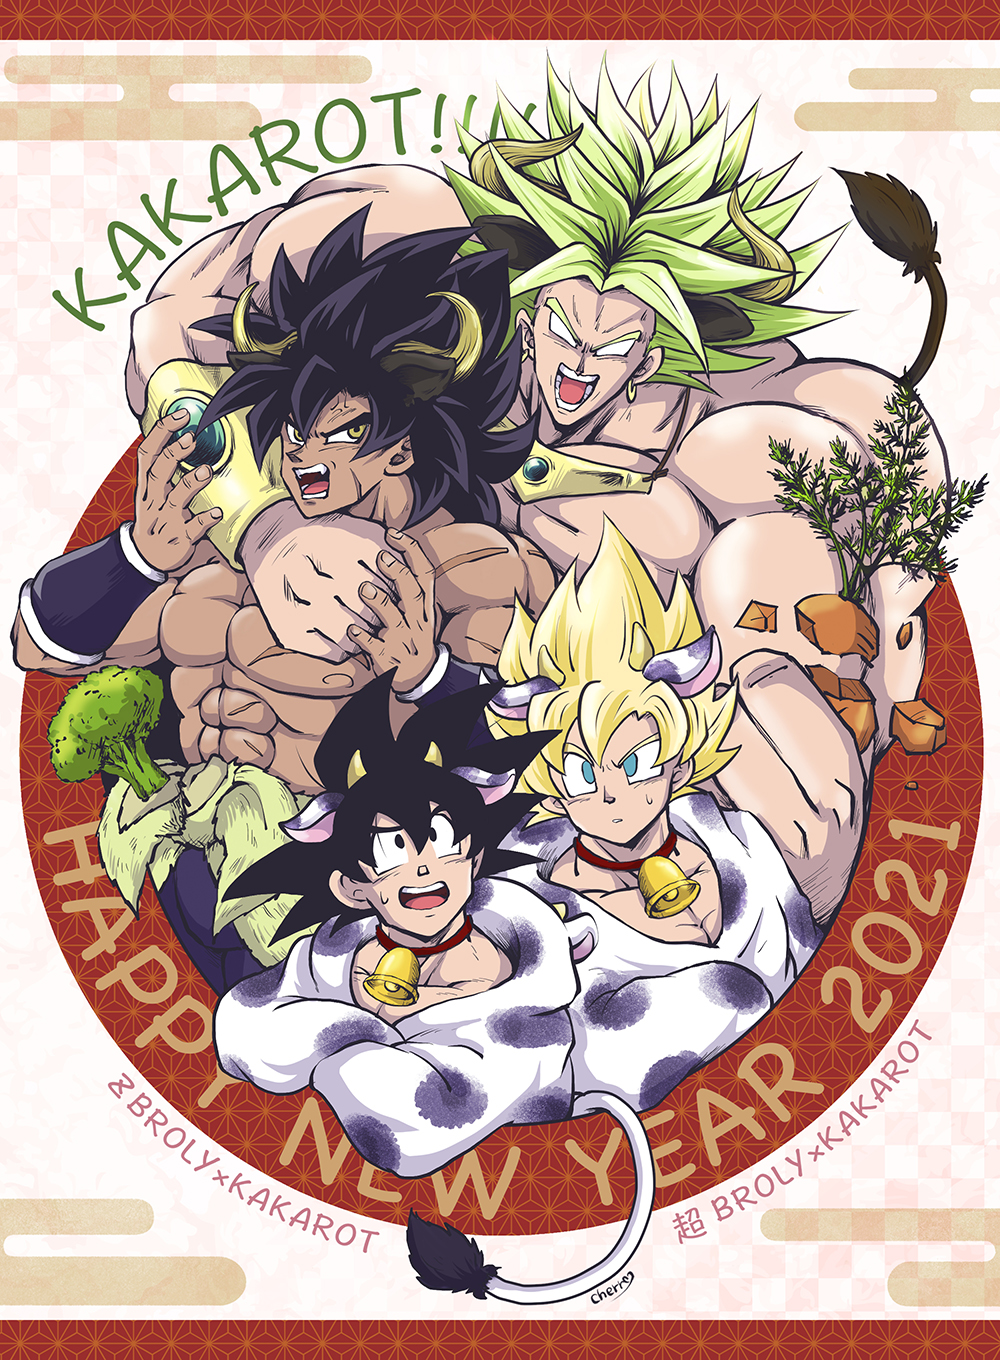 2021 4boys abs animal_costume animal_ears animal_print arm_around_shoulder bell bell_collar blonde_hair broly broly_(dragon_ball_super) cherry_(cherrymoon26) chinese_zodiac collar cow_boy cow_costume cow_ears cow_horns cow_print cow_tail dark_skin dark_skinned_male dragon_ball dragon_ball_super green_hair happy_new_year highres horns male_focus multiple_boys muscular muscular_male new_year nipples no_pupils pectorals scar scar_on_cheek scar_on_face shirtless short_hair son_goku spiky_hair stomach super_saiyan super_saiyan_1 tail upper_body year_of_the_ox